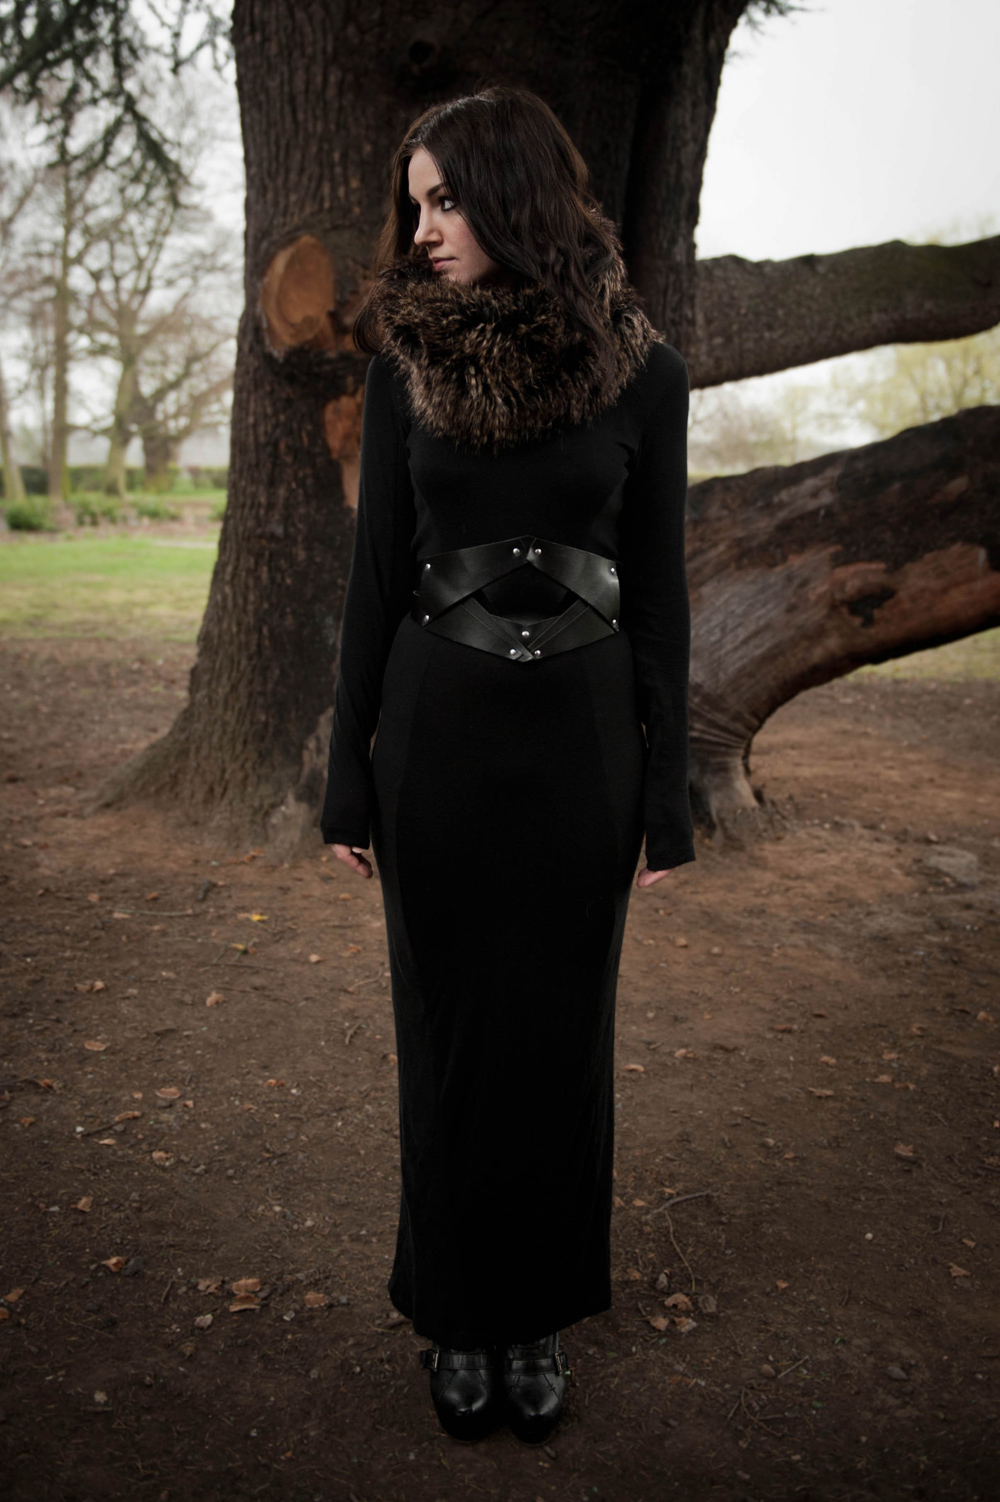 FAIIINT, Faux Fur, Snood, Black, Maxi Dress, Outfit, Park, Nature, Outdoors, Topshop Boots, COS Belt, Fur, Studs, Autumn, Winter